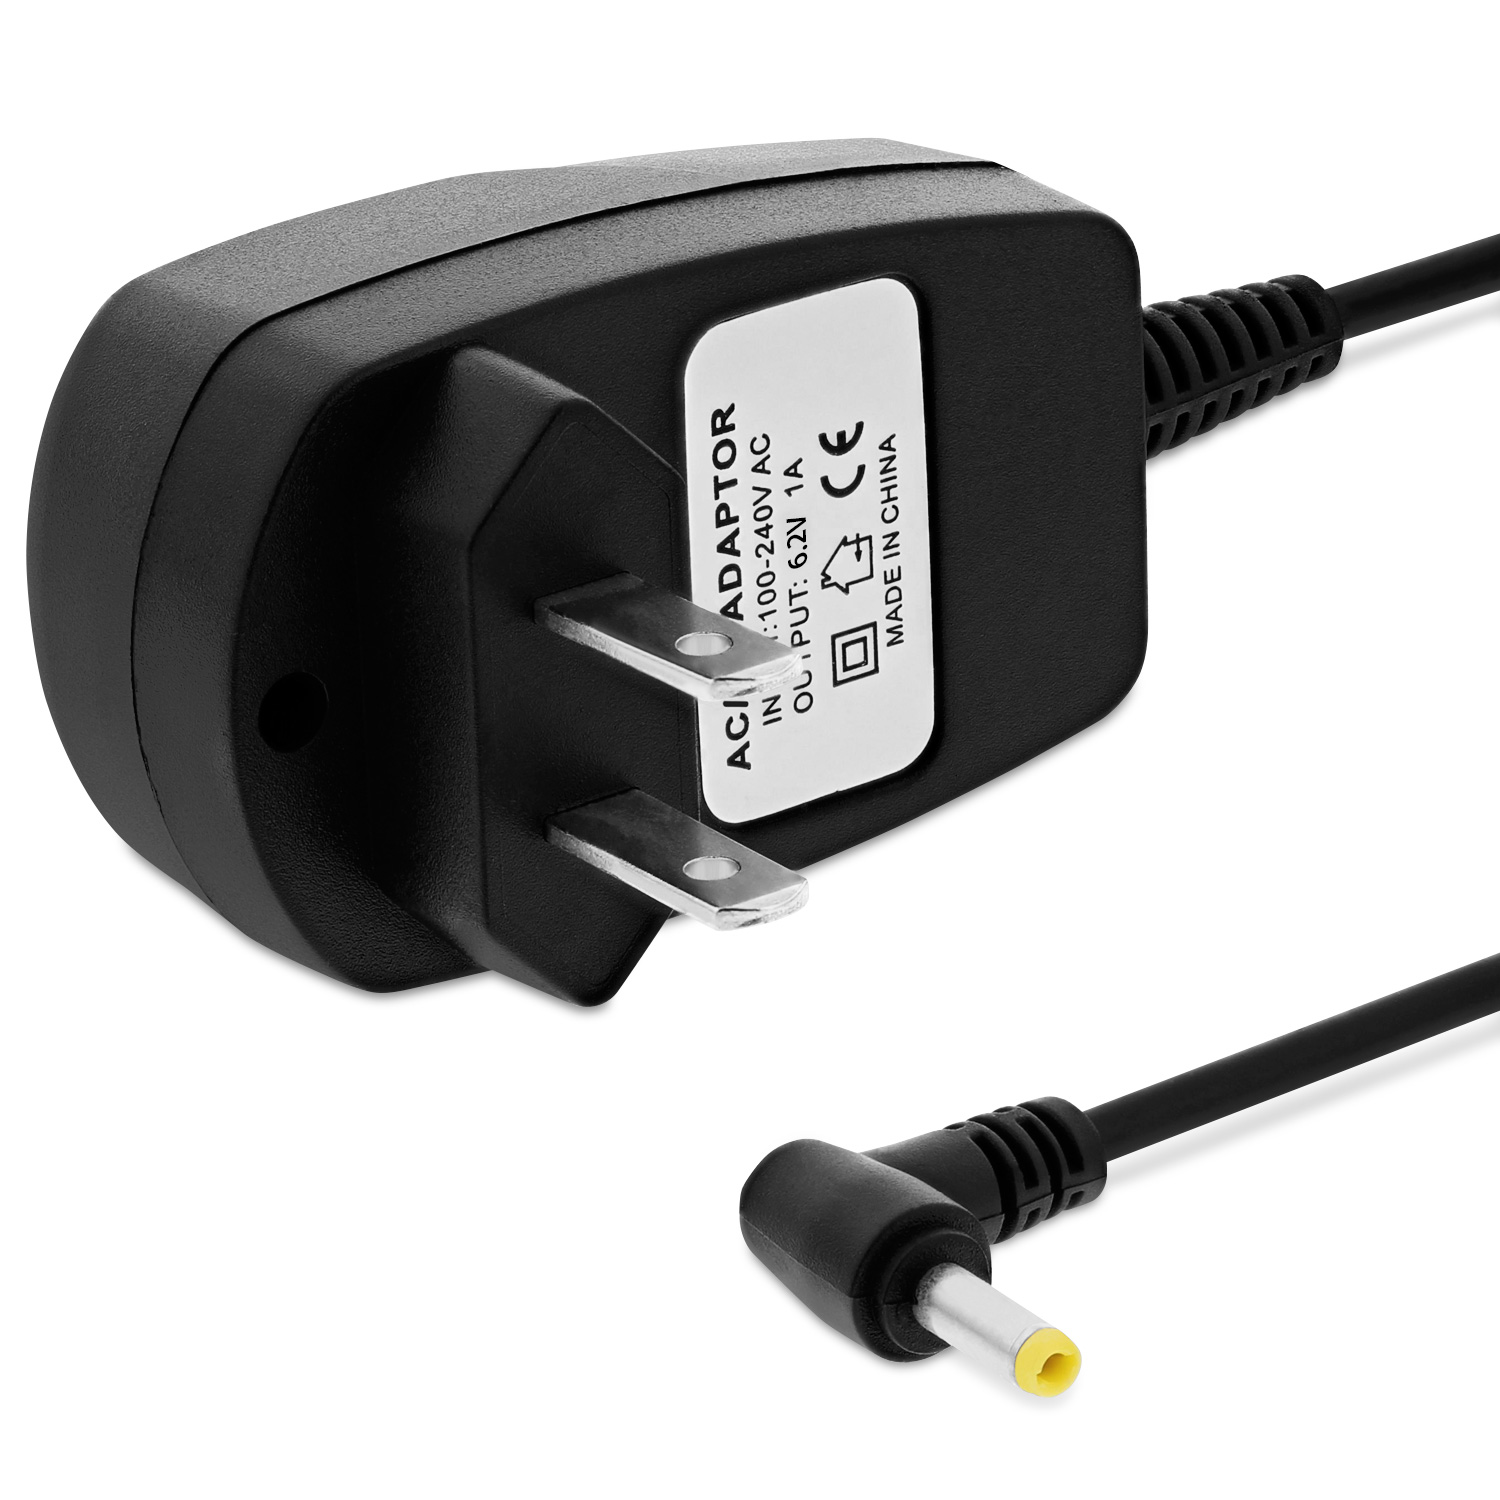 Fosmon AC Converter Adapter DC 6.2V Power Supply Charger US plug